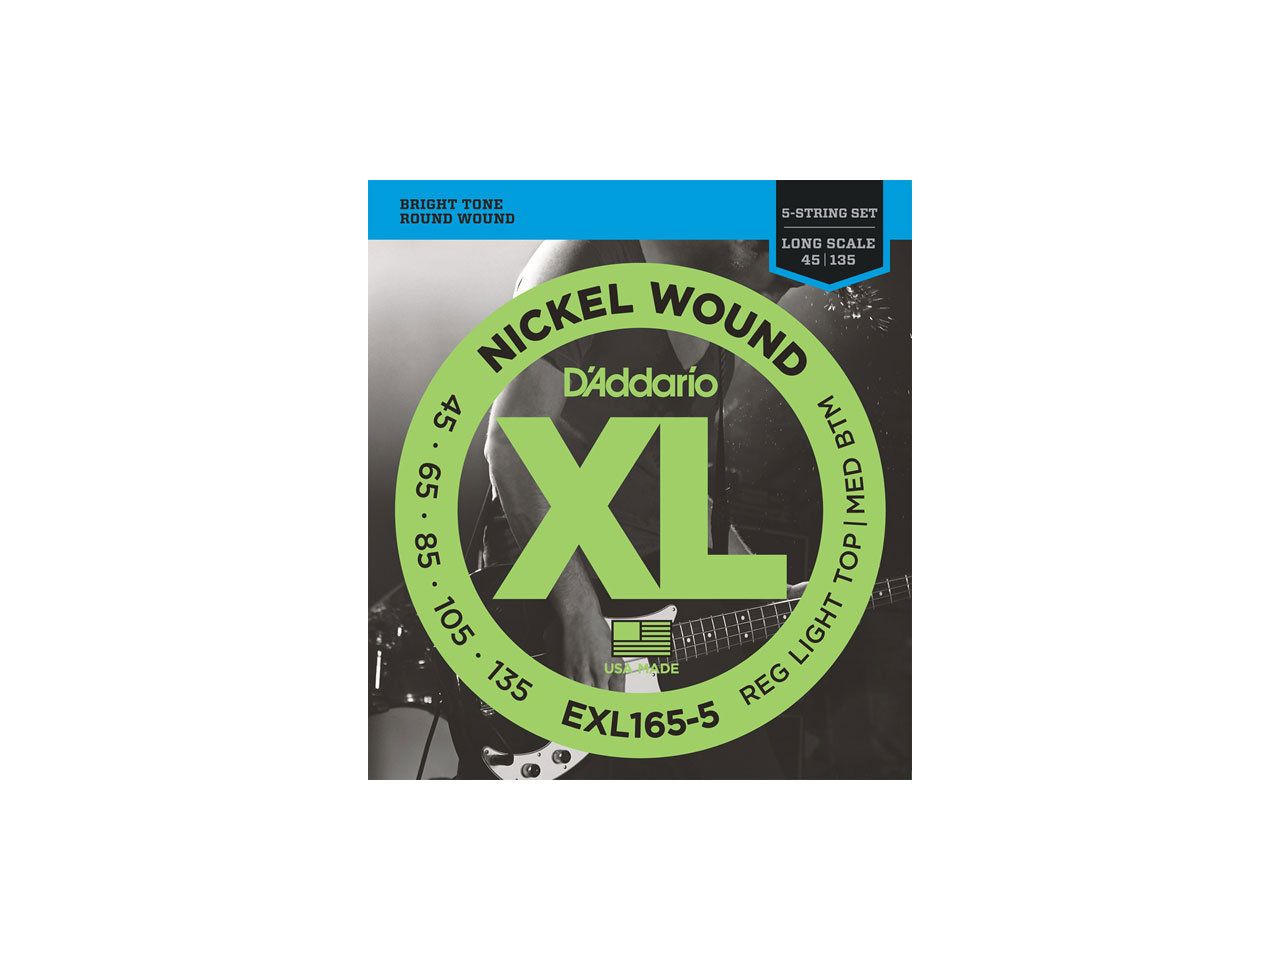 D'Addario(ダダリオ) XL Nickel Round Wound , 5-String/Long Scale , Regular Light Top/Medium Bottom / EXL165-5 (エレキベース弦/5弦用)